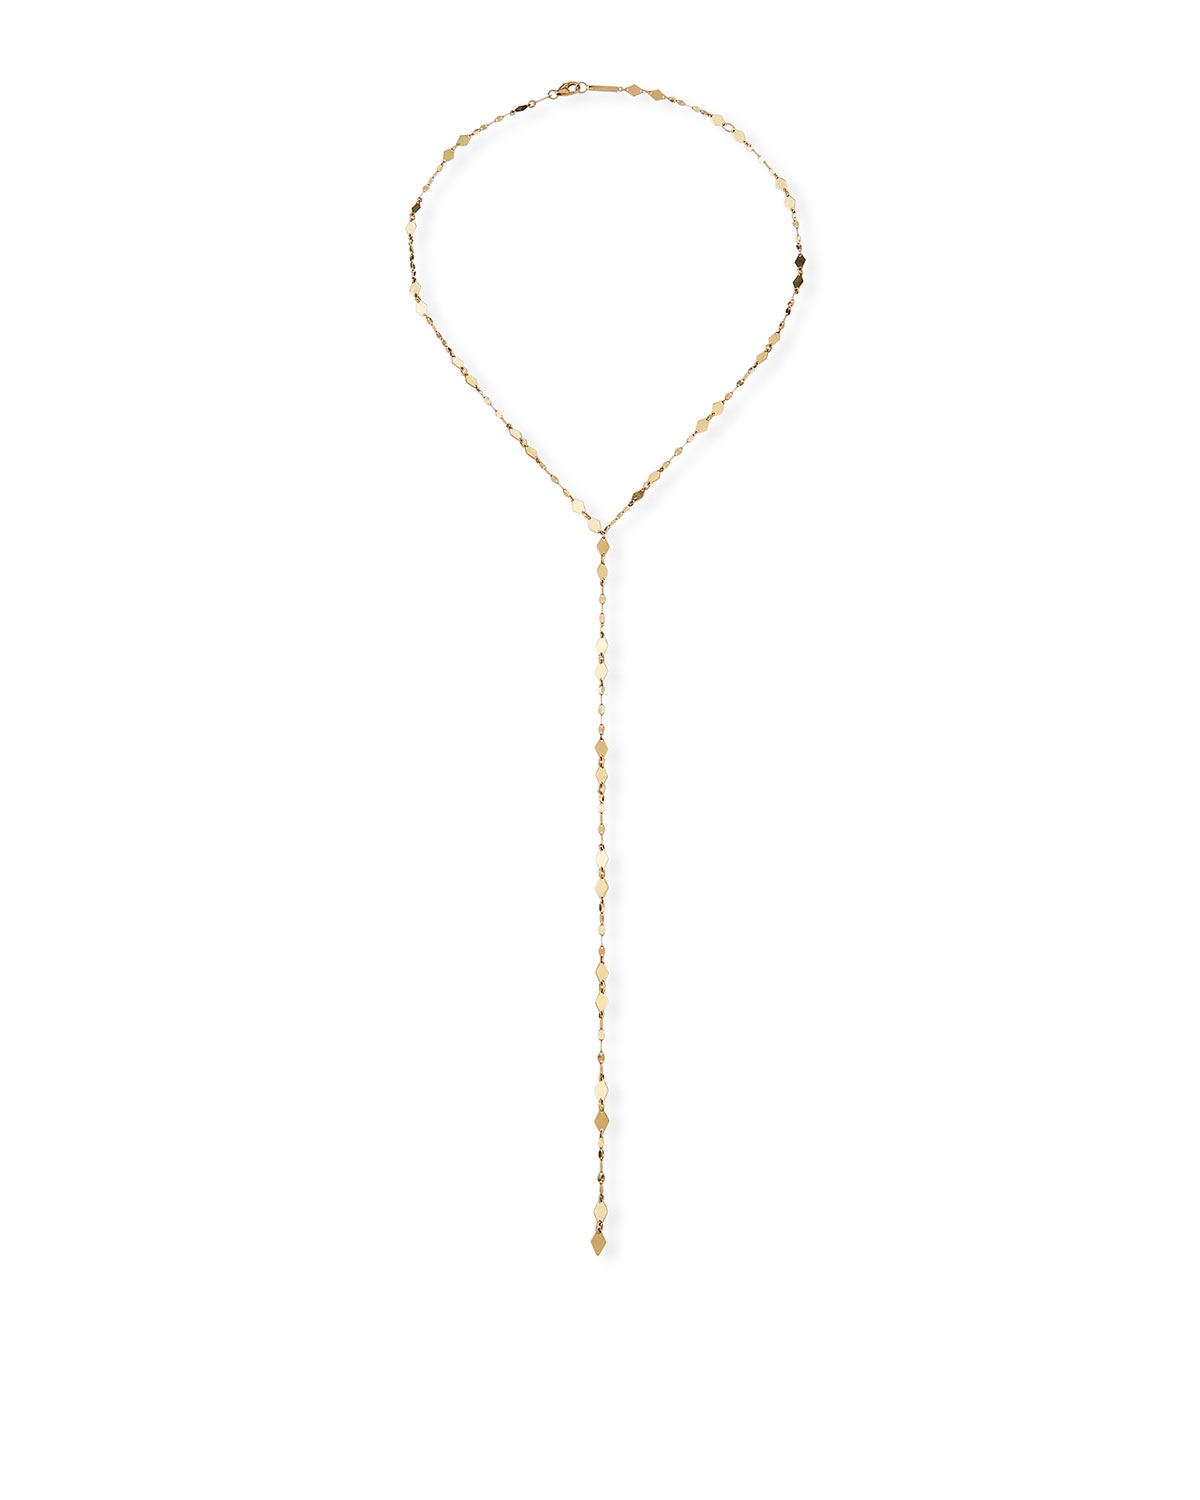 Lana 14k Gold Blake & Mini Kite Drop Lariat Necklace